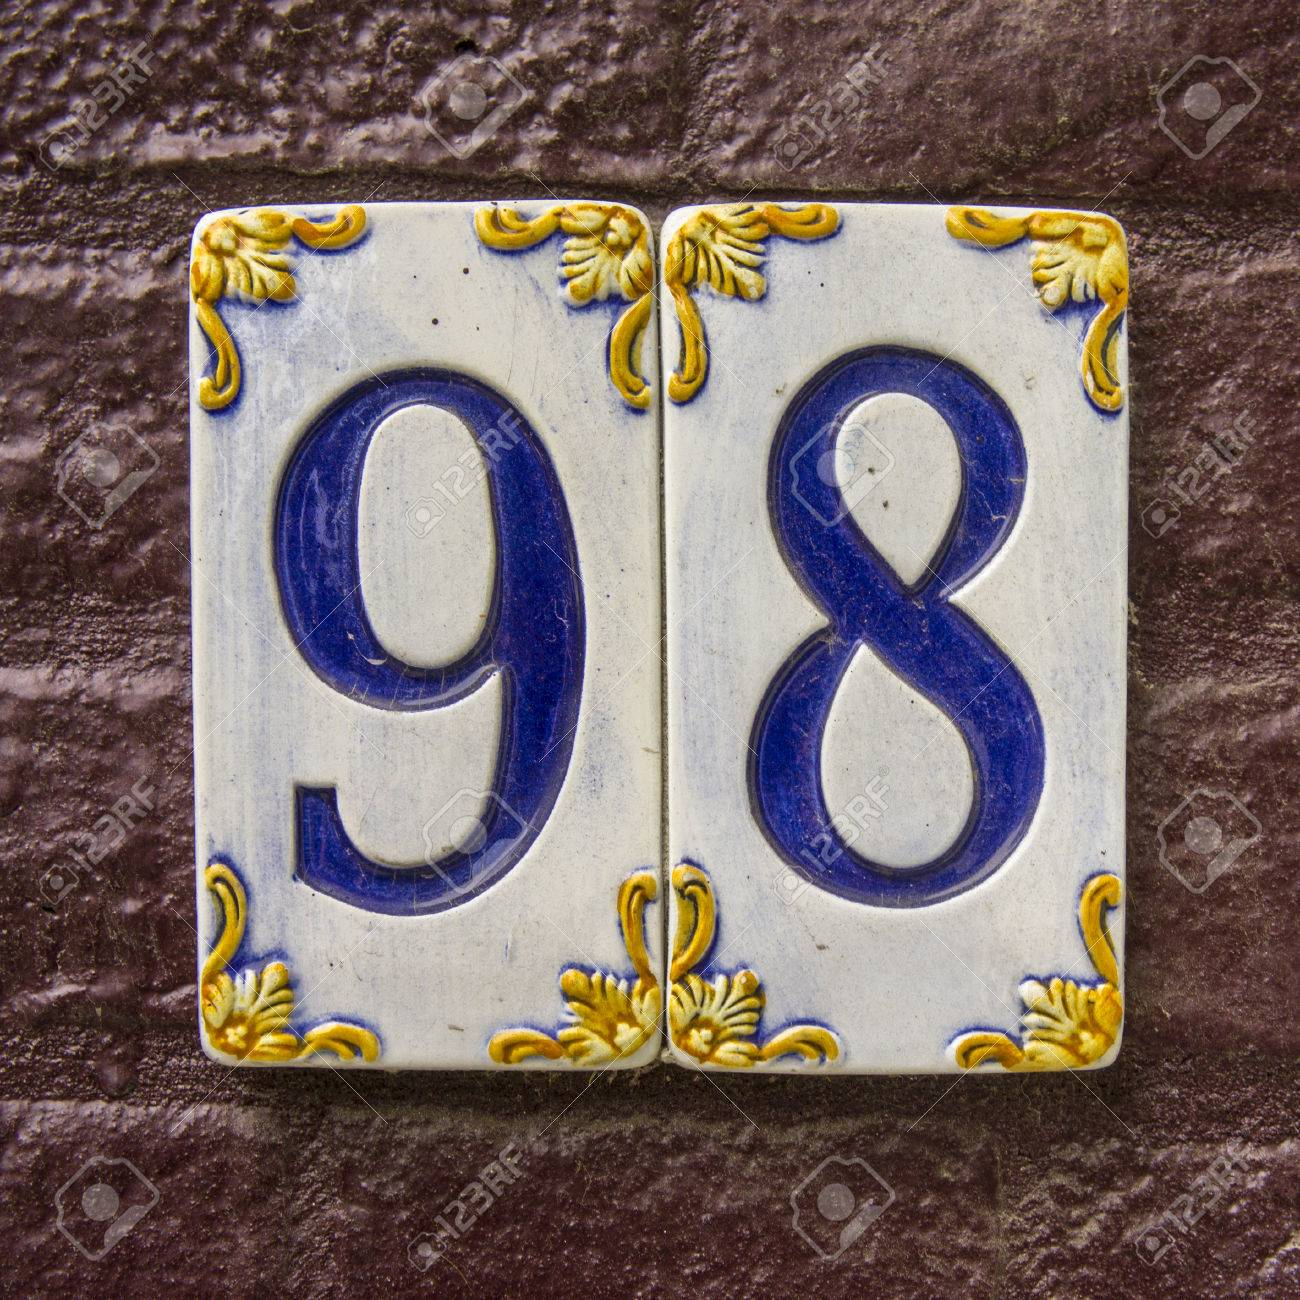 Mexican ceramic tile house numbers gallery tile flooring design ceramic tile house numbers choice image tile flooring design ideas house number ninety eight on two dailygadgetfo Image collections